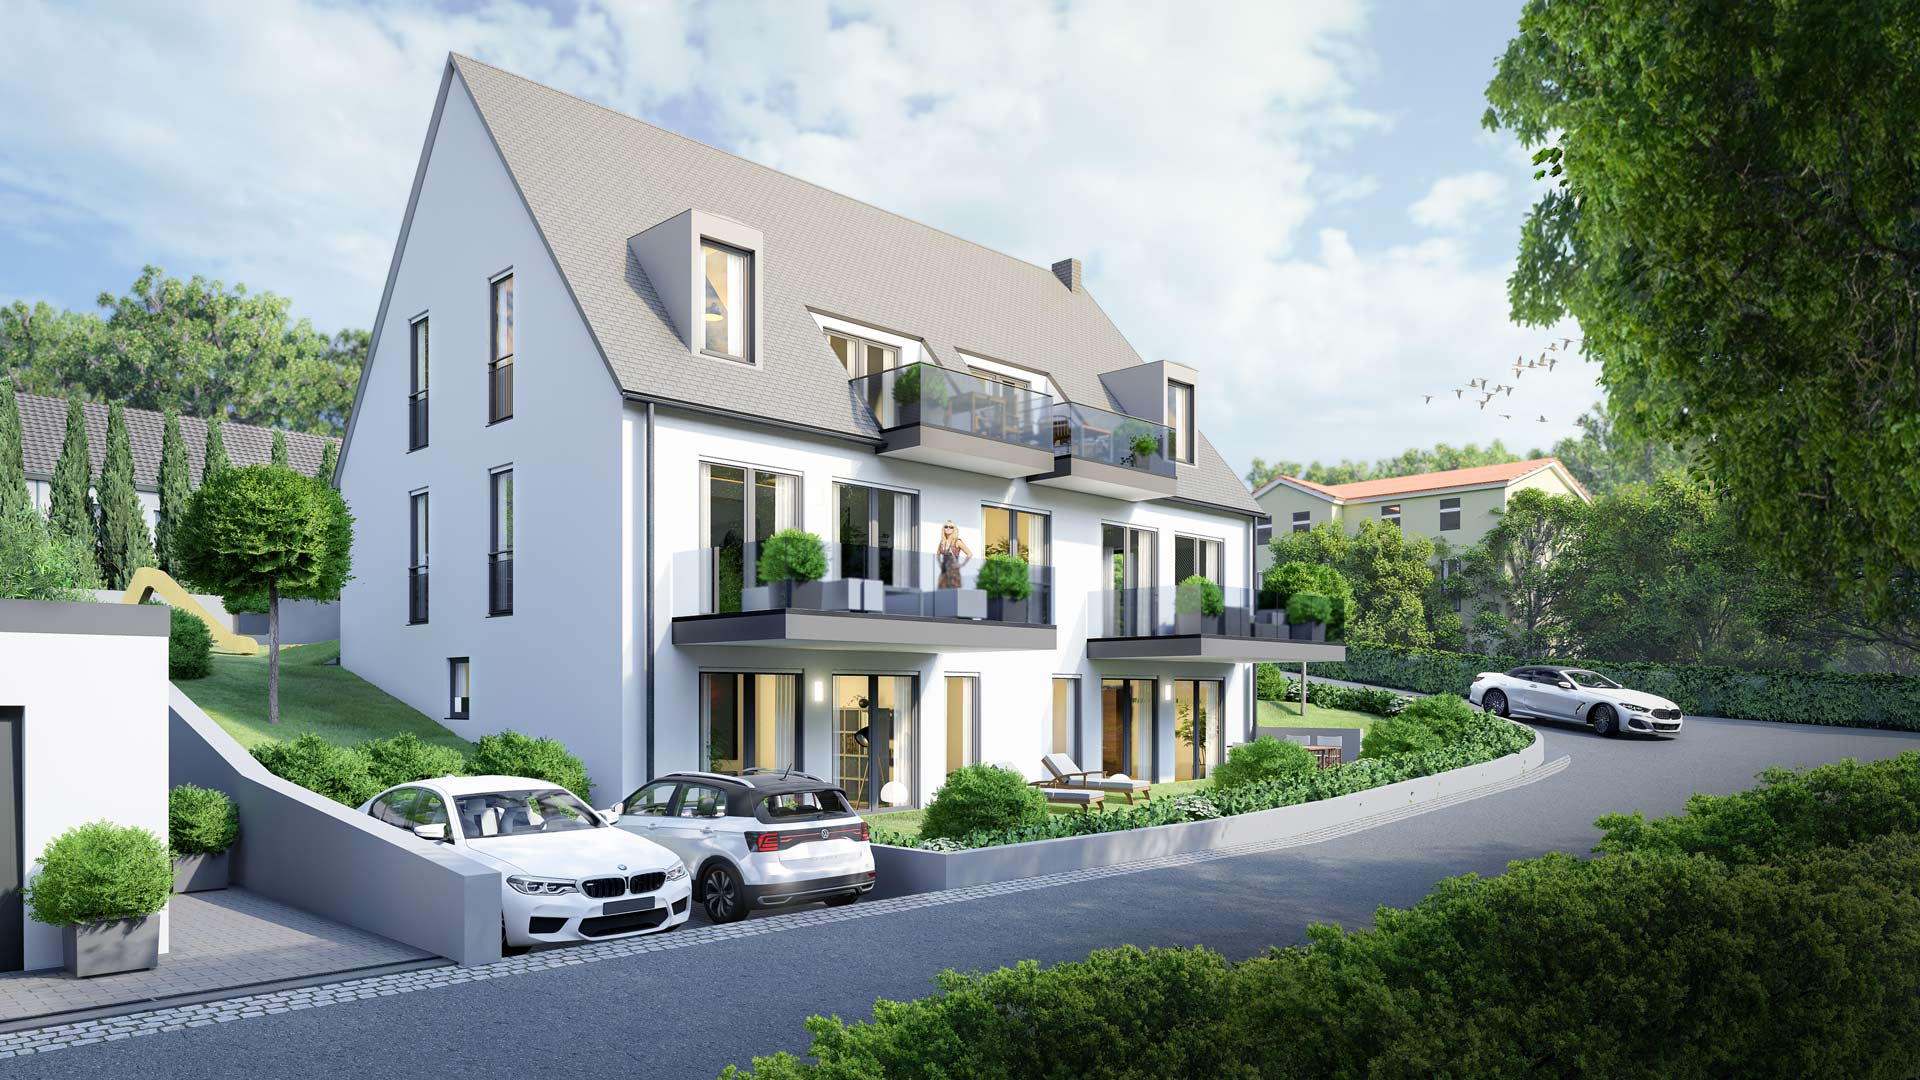 Architektur Rendering Rendering Archive • Architektur-visualisierung Studio | 3d Visualisierung Für Immobilien